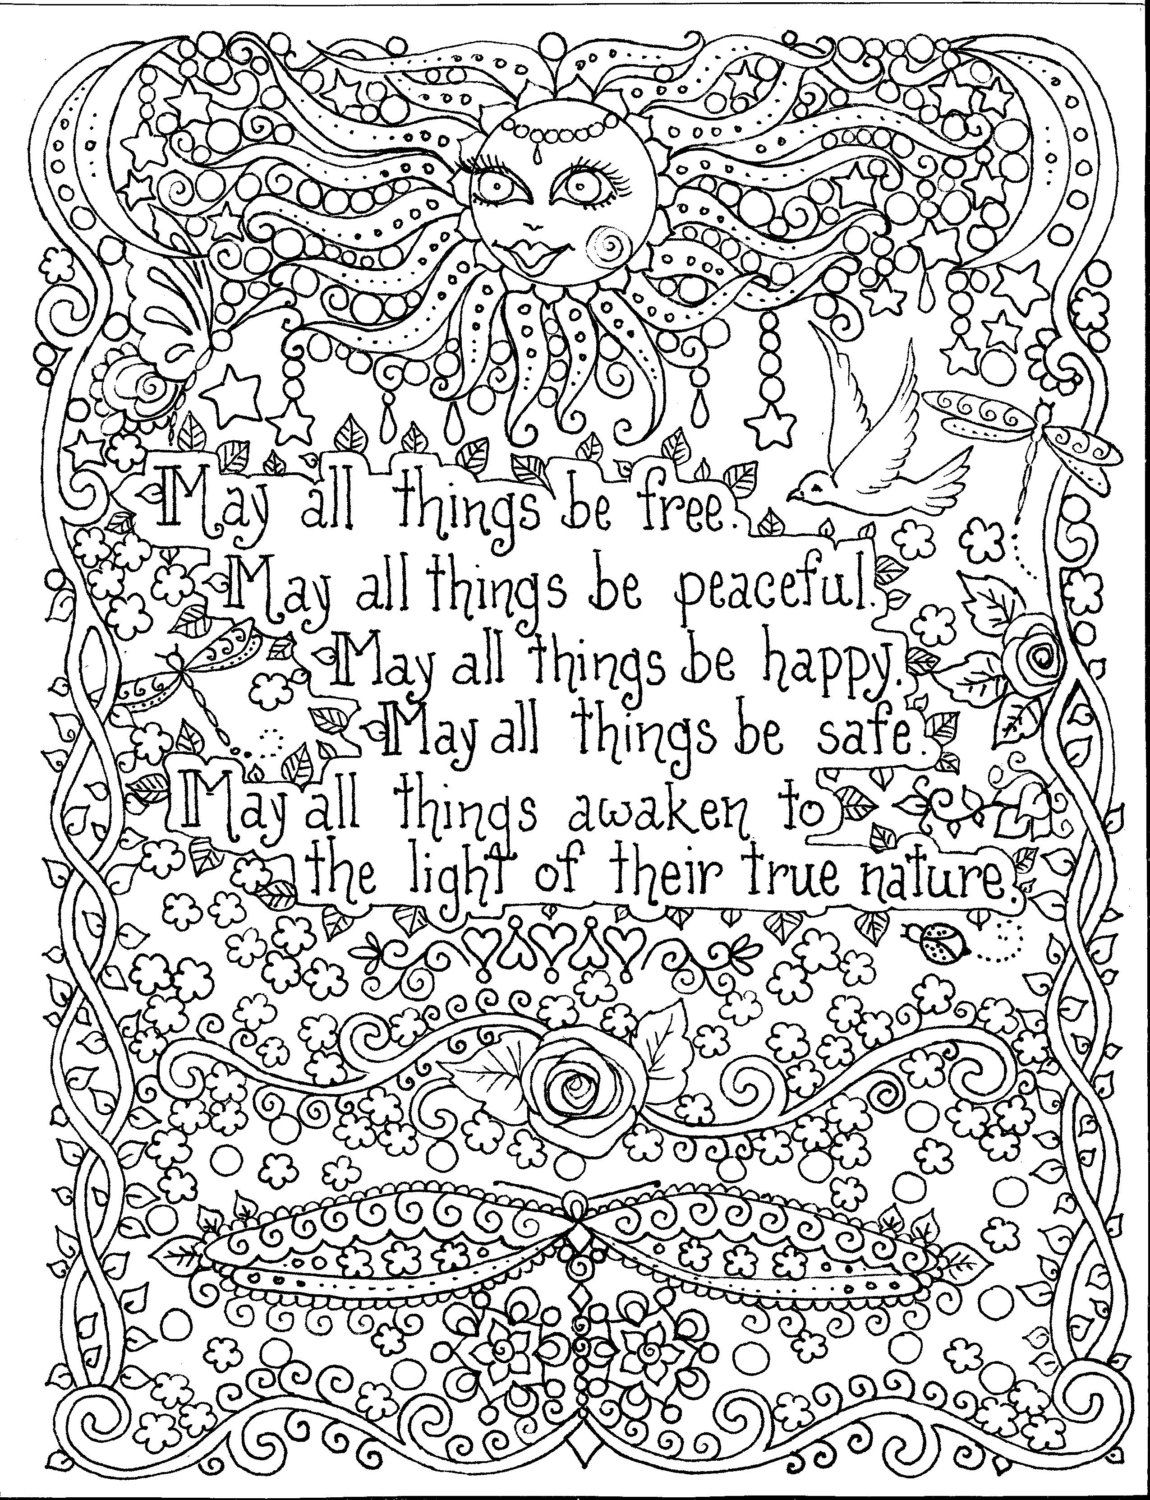 Instant Download Coloring Page 8 1 2 X 11 May All Things Be Free